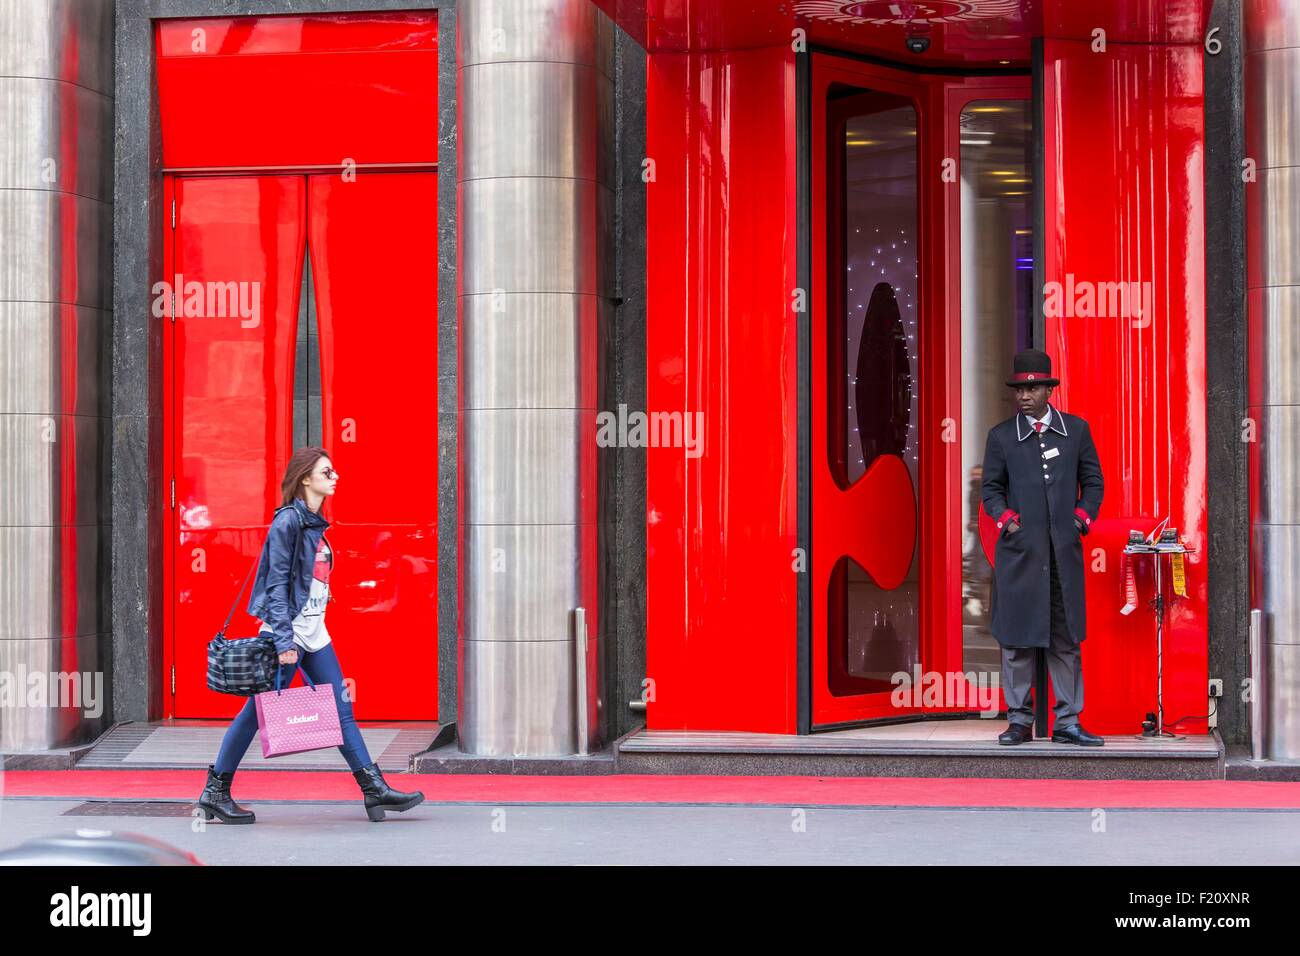 Italie, Lombardie, Milan, Court Corso Giacomo Matteotti and entrance of the hotel Boscolo - Stock Image